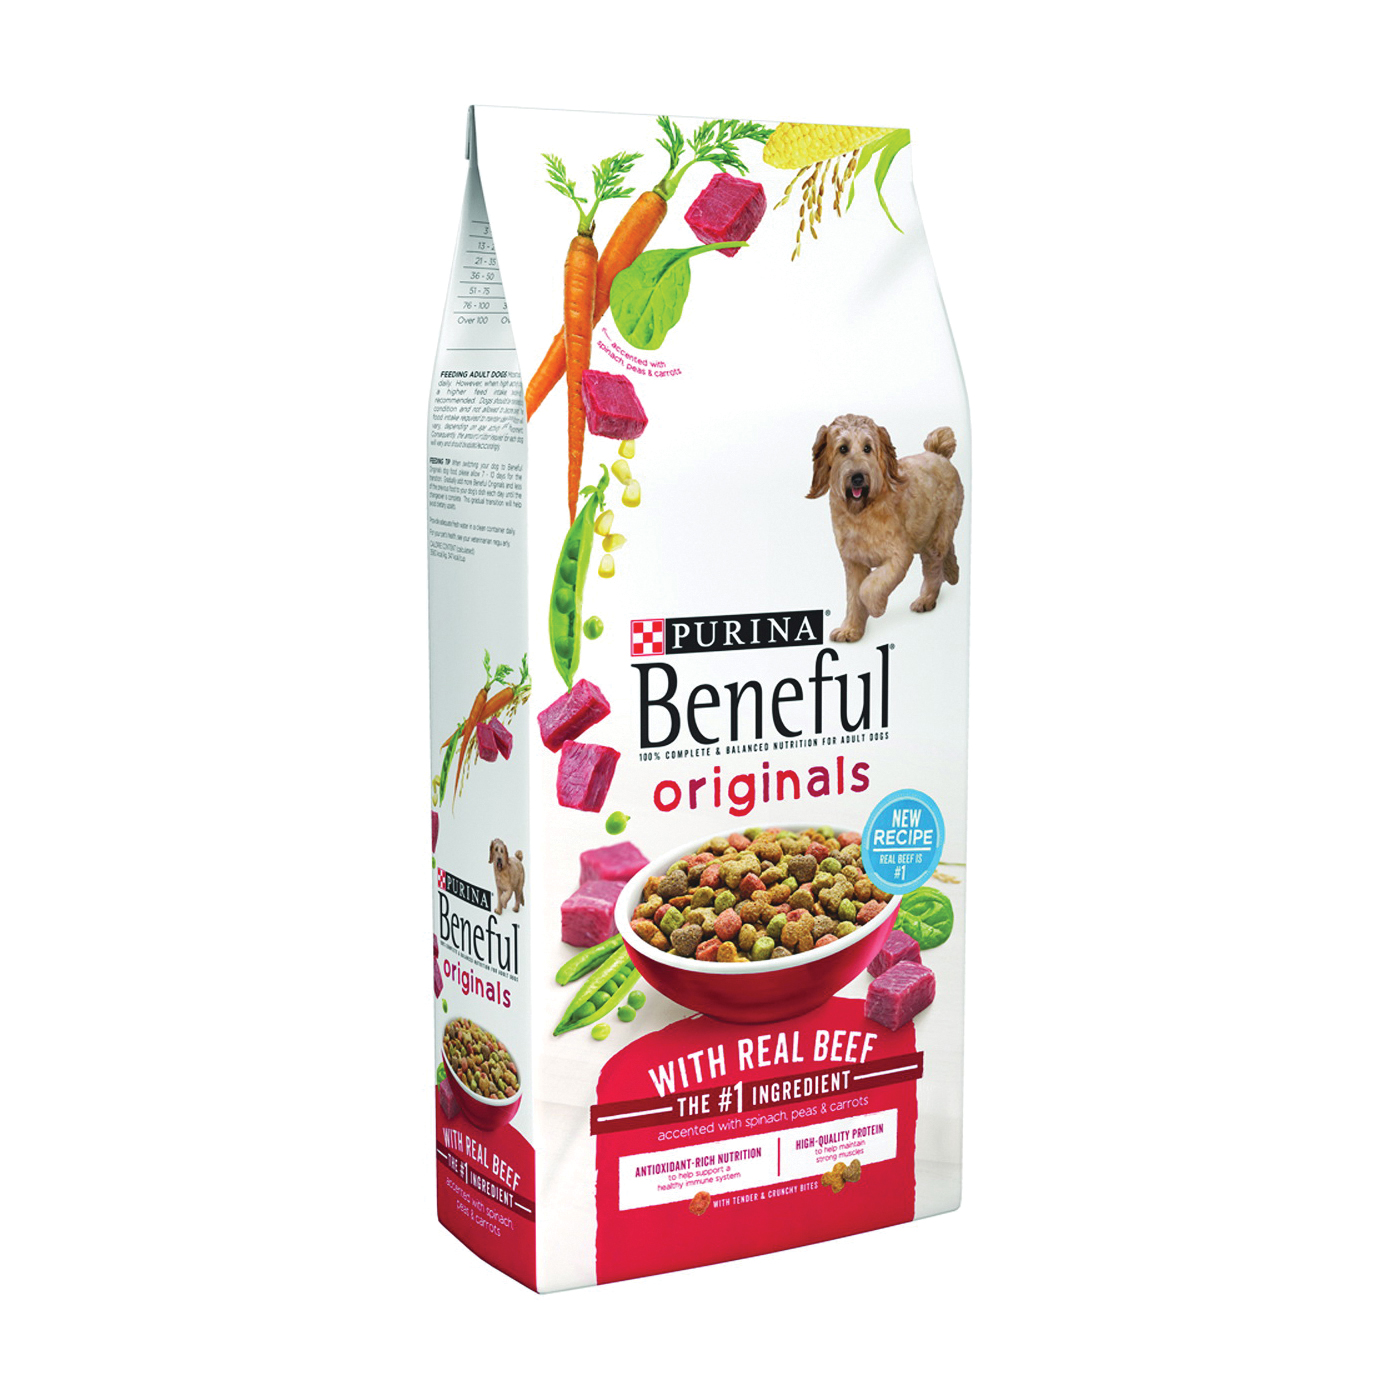 Picture of Beneful 1780013485 Dog Food, Beef Flavor, 3.5 lb Package, Bag